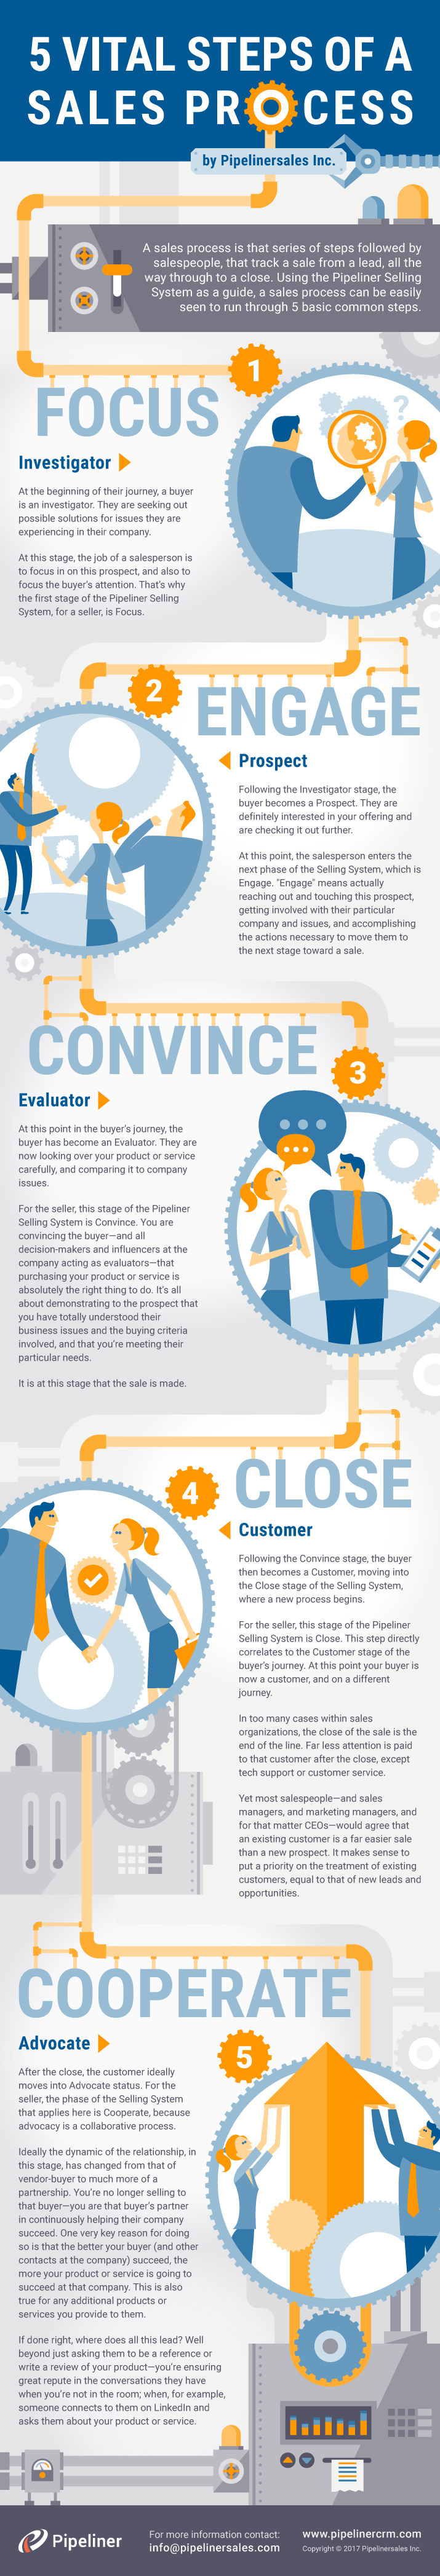 Vital Steps of Sales Process an Infographic